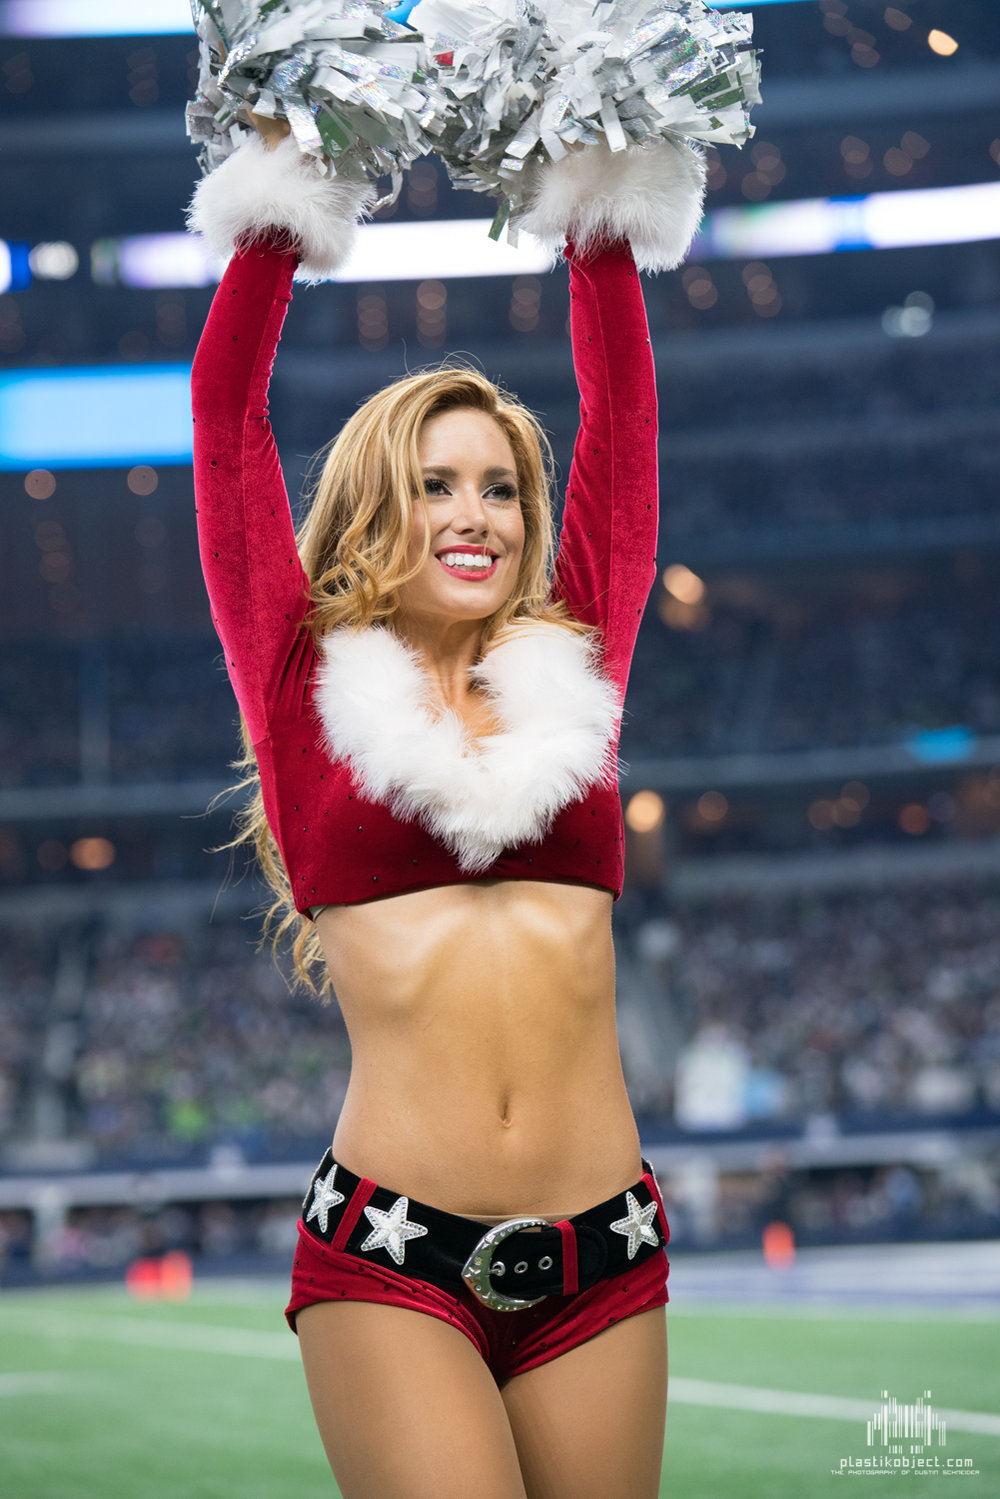 20171224_DalvsSea_cheer_Savannah-5.jpg